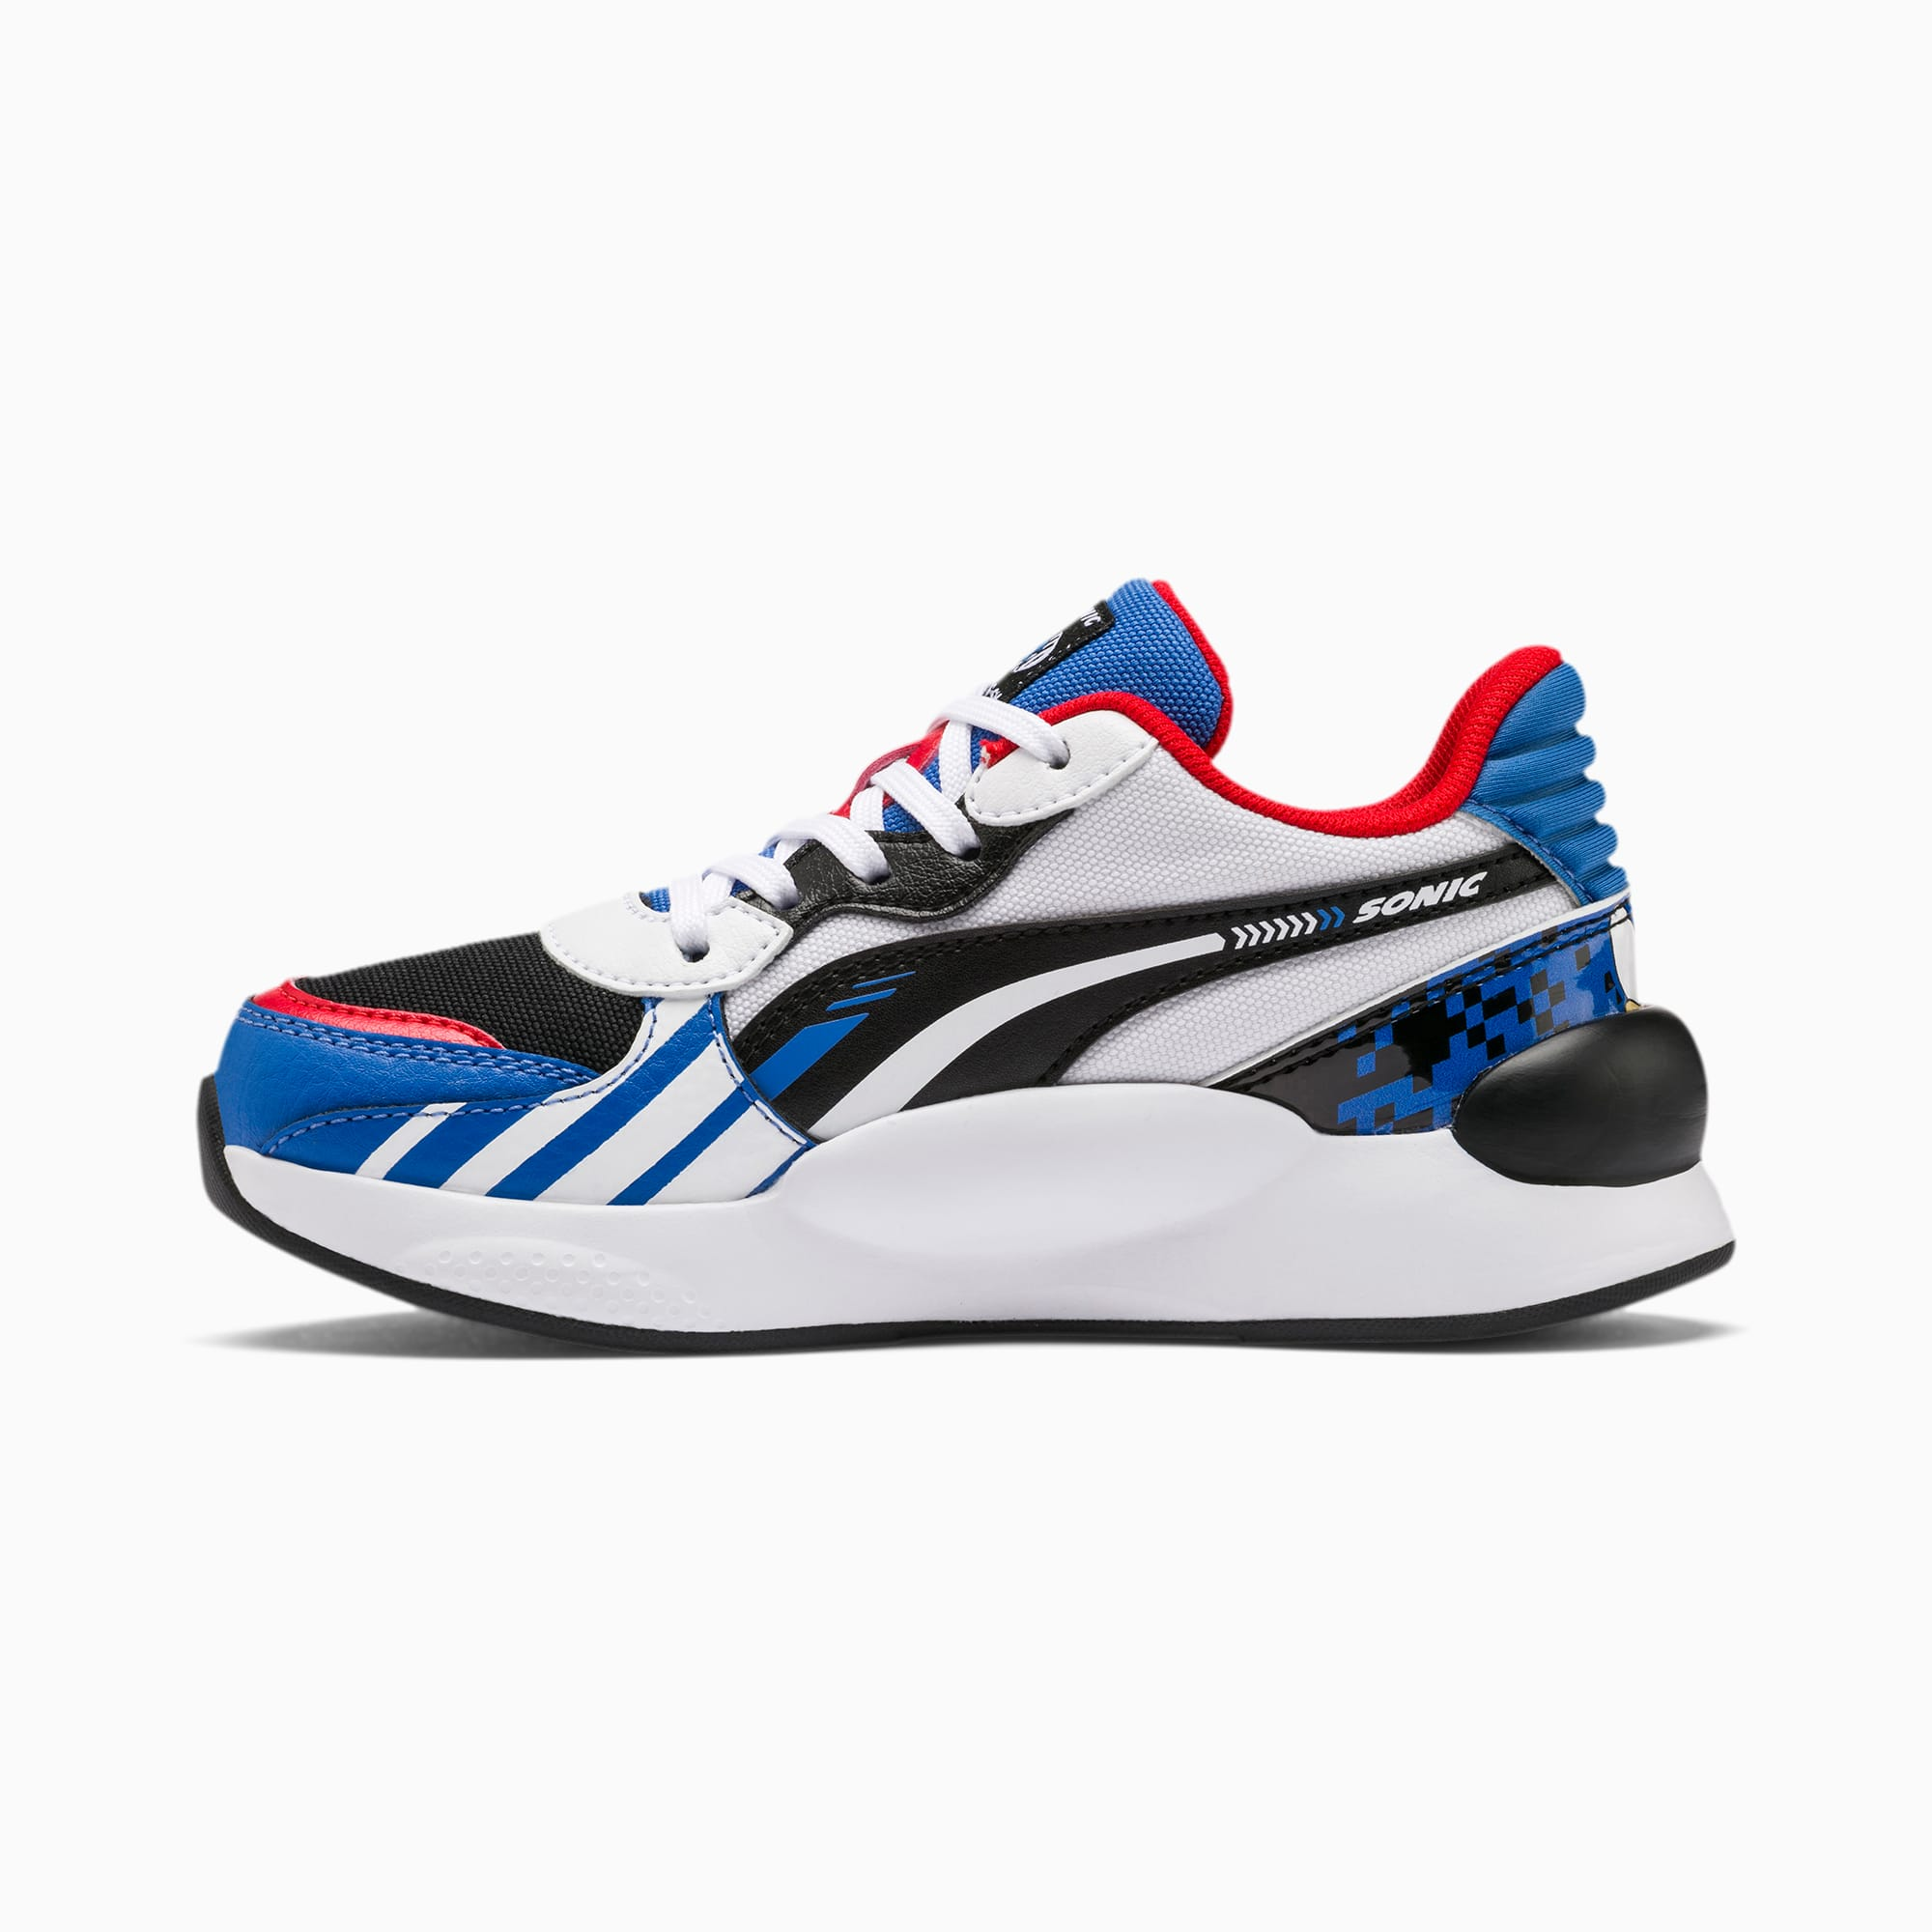 PUMA x SONIC RS 9.8 Little Kids' Shoes